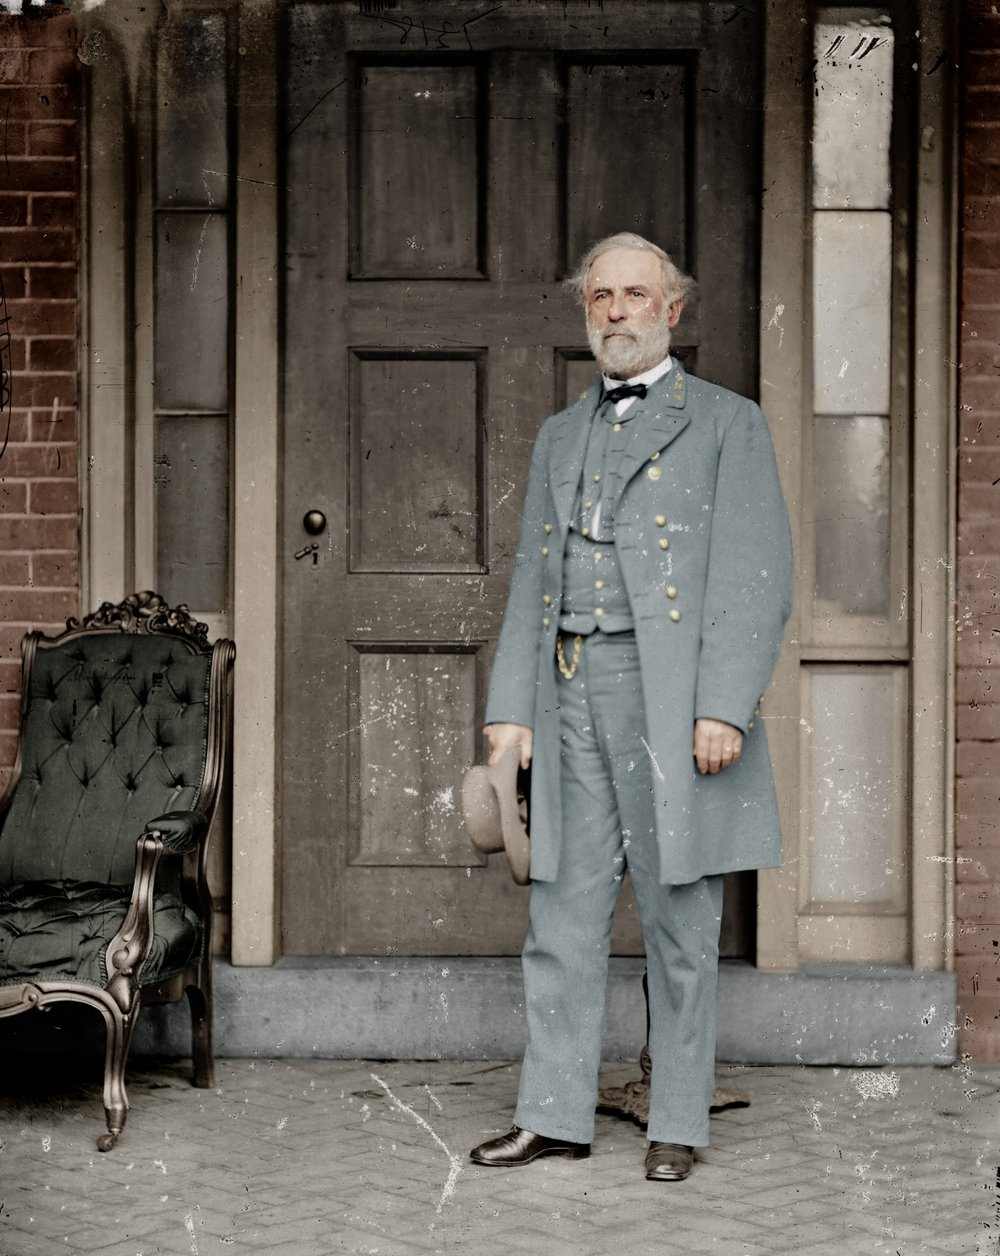 General Robert E. Lee, C.S.A., a week after surrendering the Army of Northern Virginia to General Ulysses S. Grant, effectively ending the American Civil War - April 16, 1865 - Mads.jpg